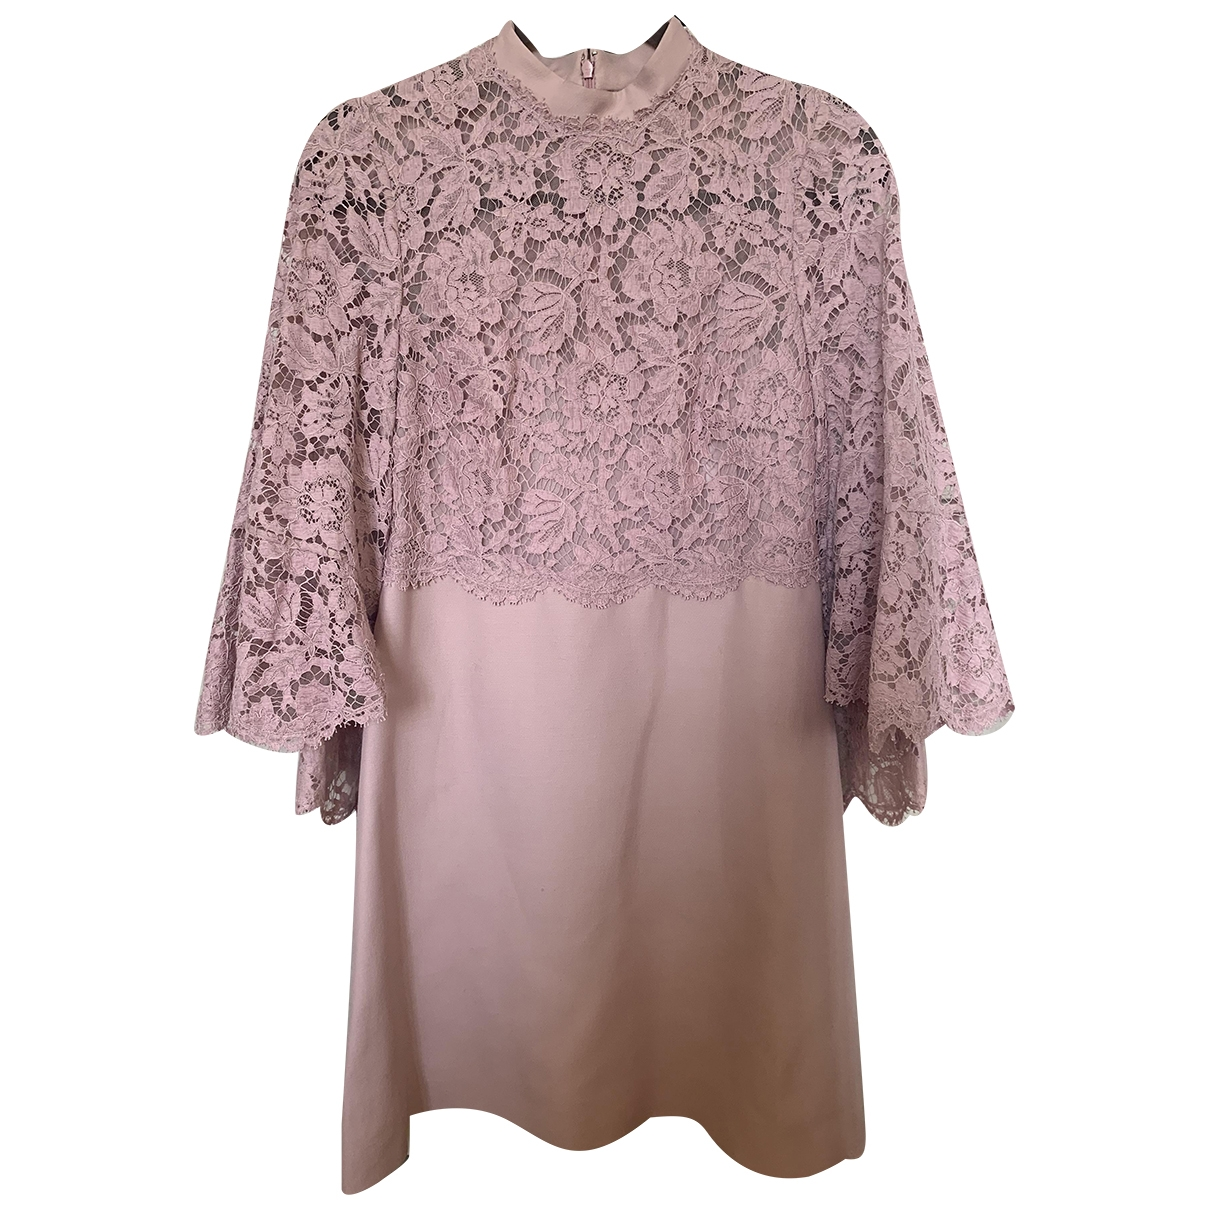 Valentino Garavani \N Pink Lace dress for Women 40 IT